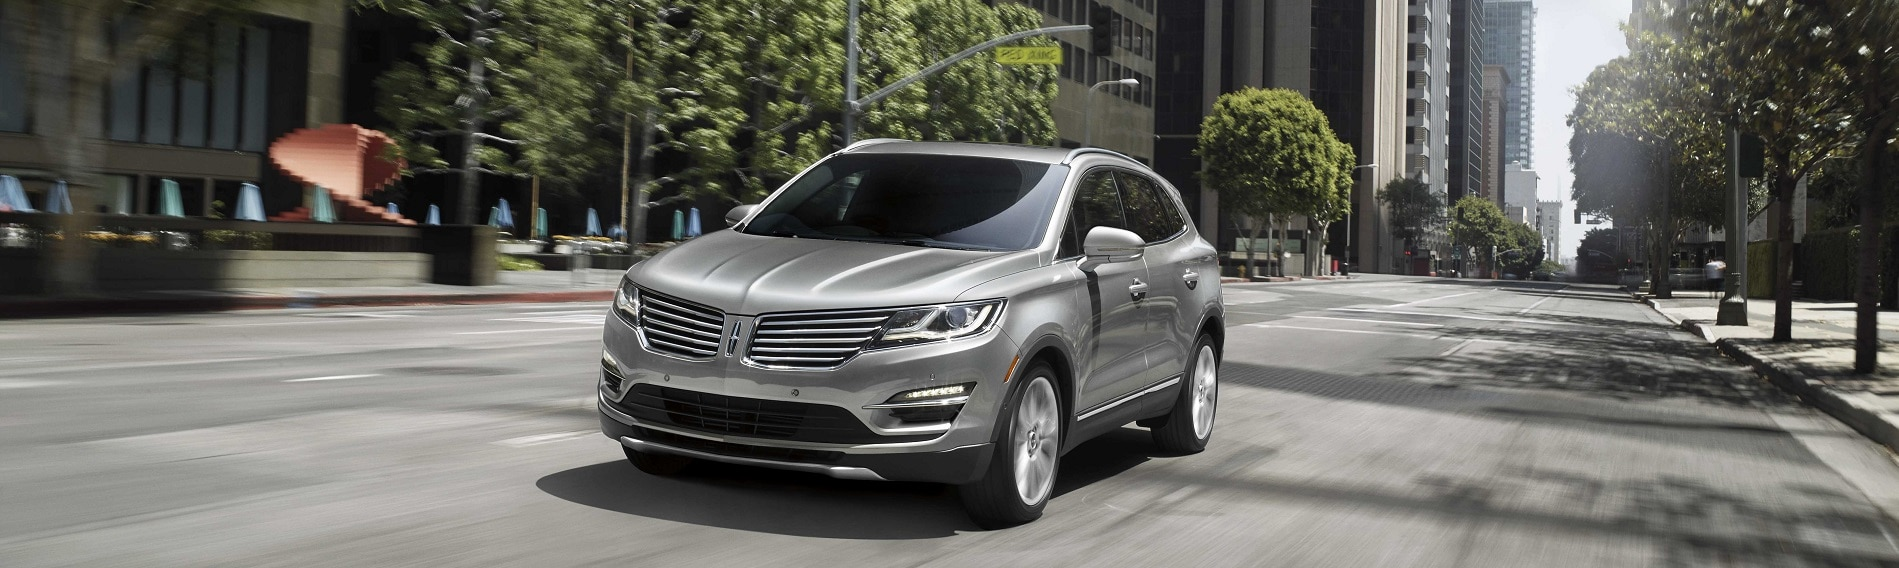 Lincoln MKC Cleveland